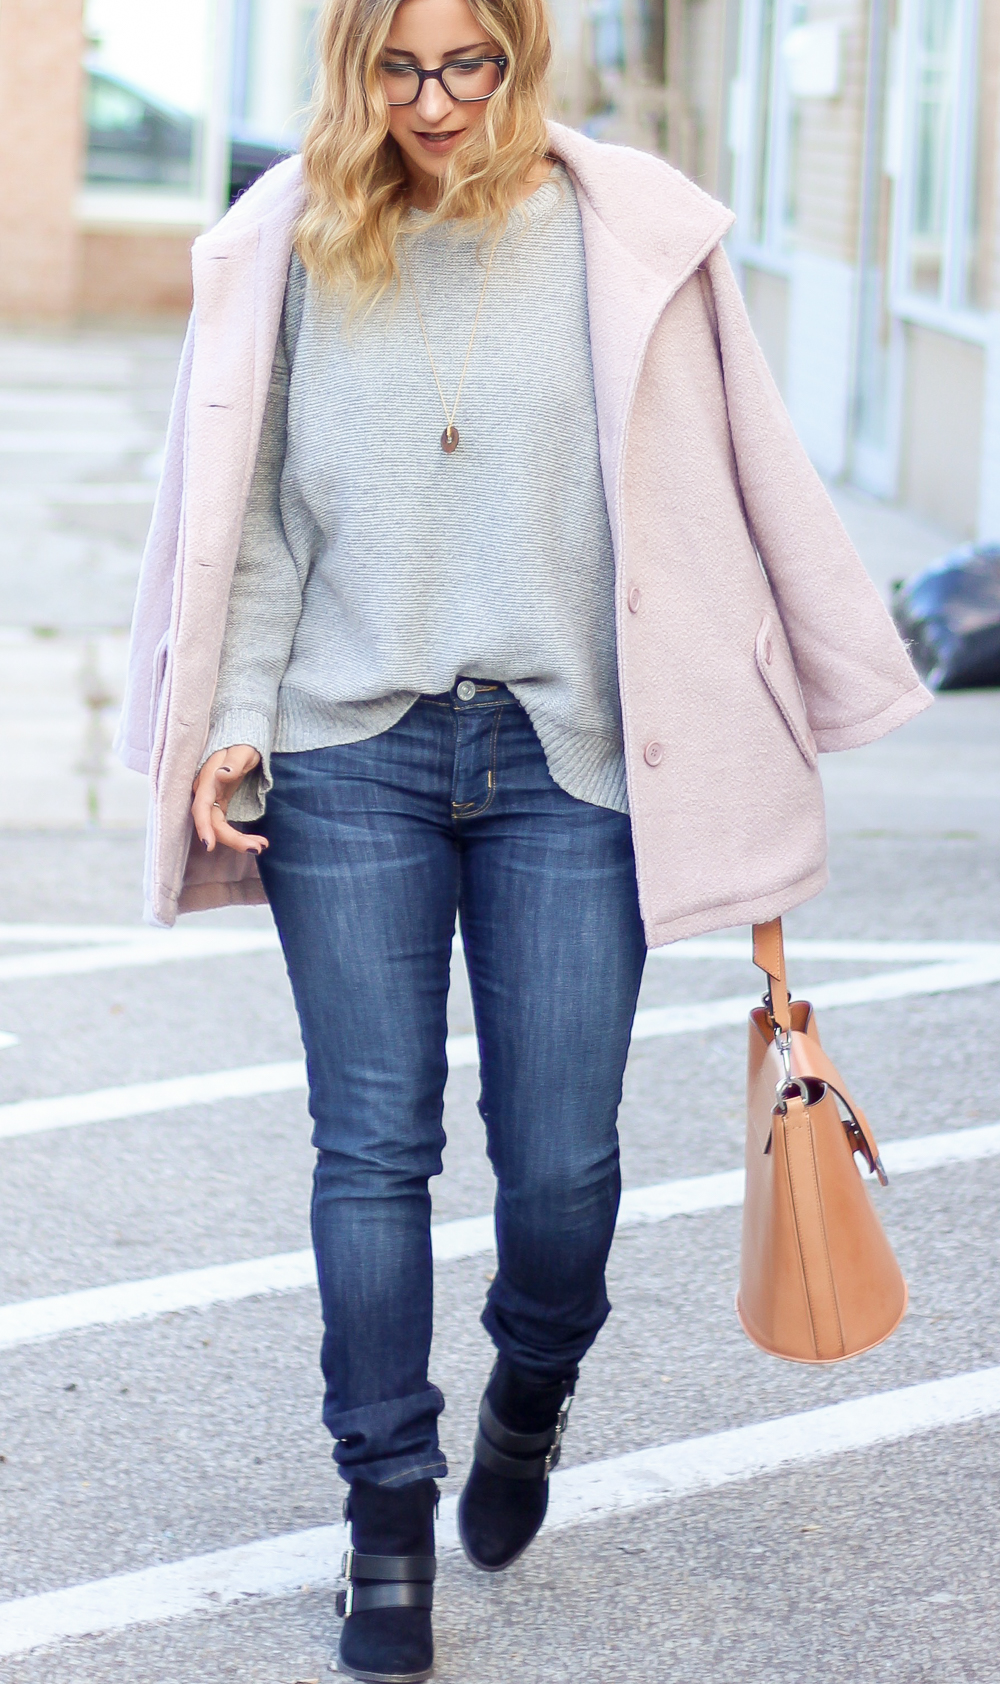 How to wear a pink coat for the fall - Coat is from cupcakes and cashmere, with dark skinny jeans and a grey sweater from Madewell